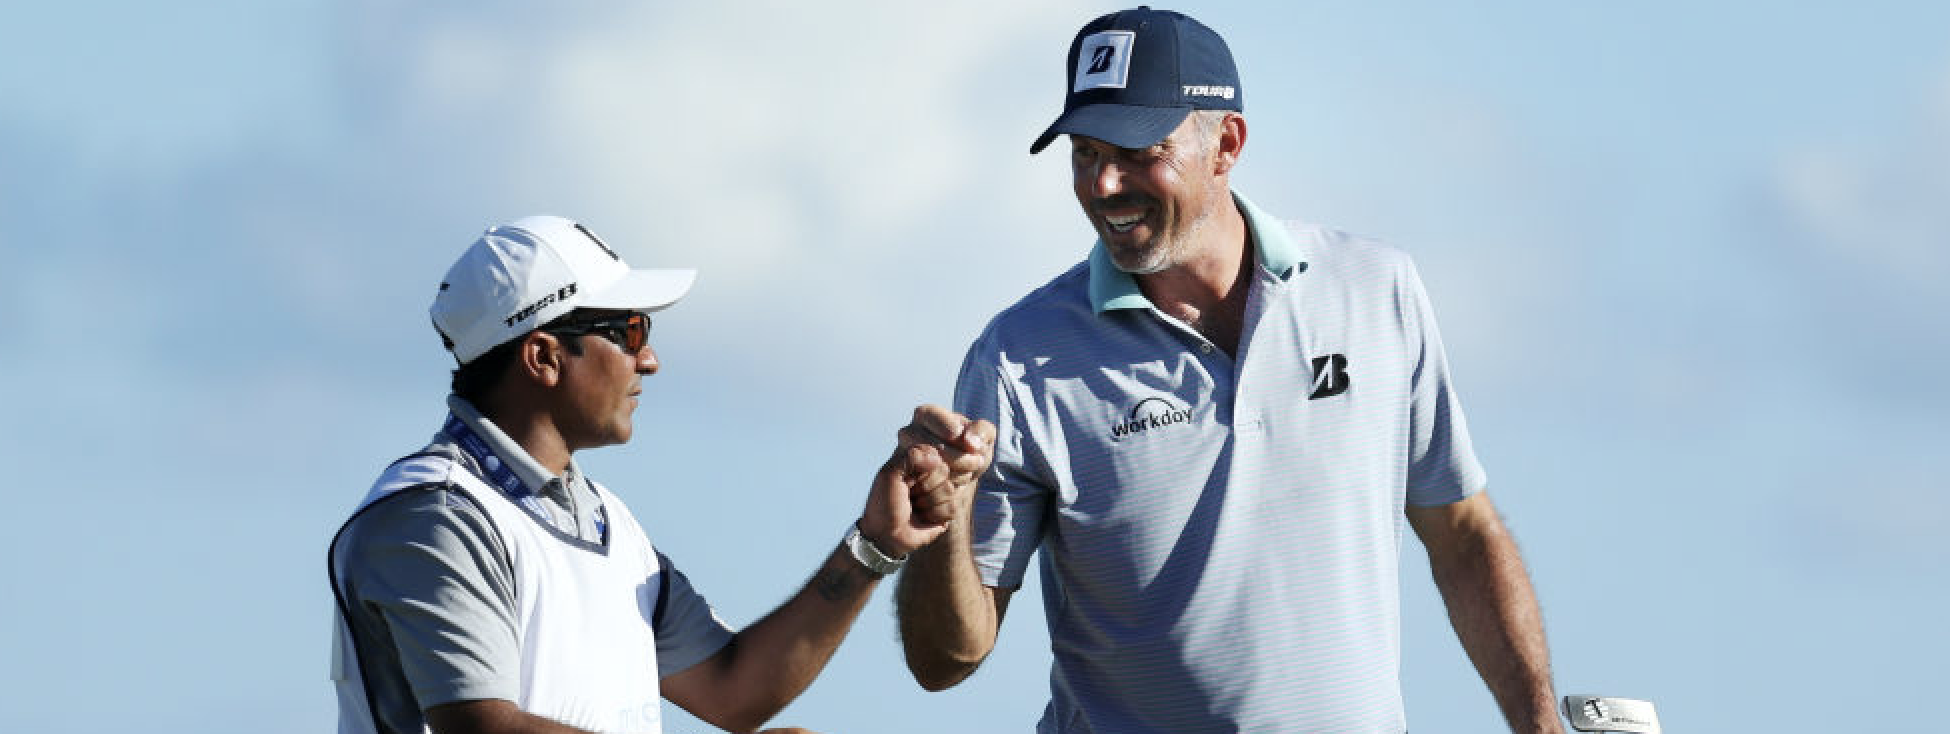 Was Matt Kuchar's $5K Caddie Payout After Winning $1.3M Actually Wrong?